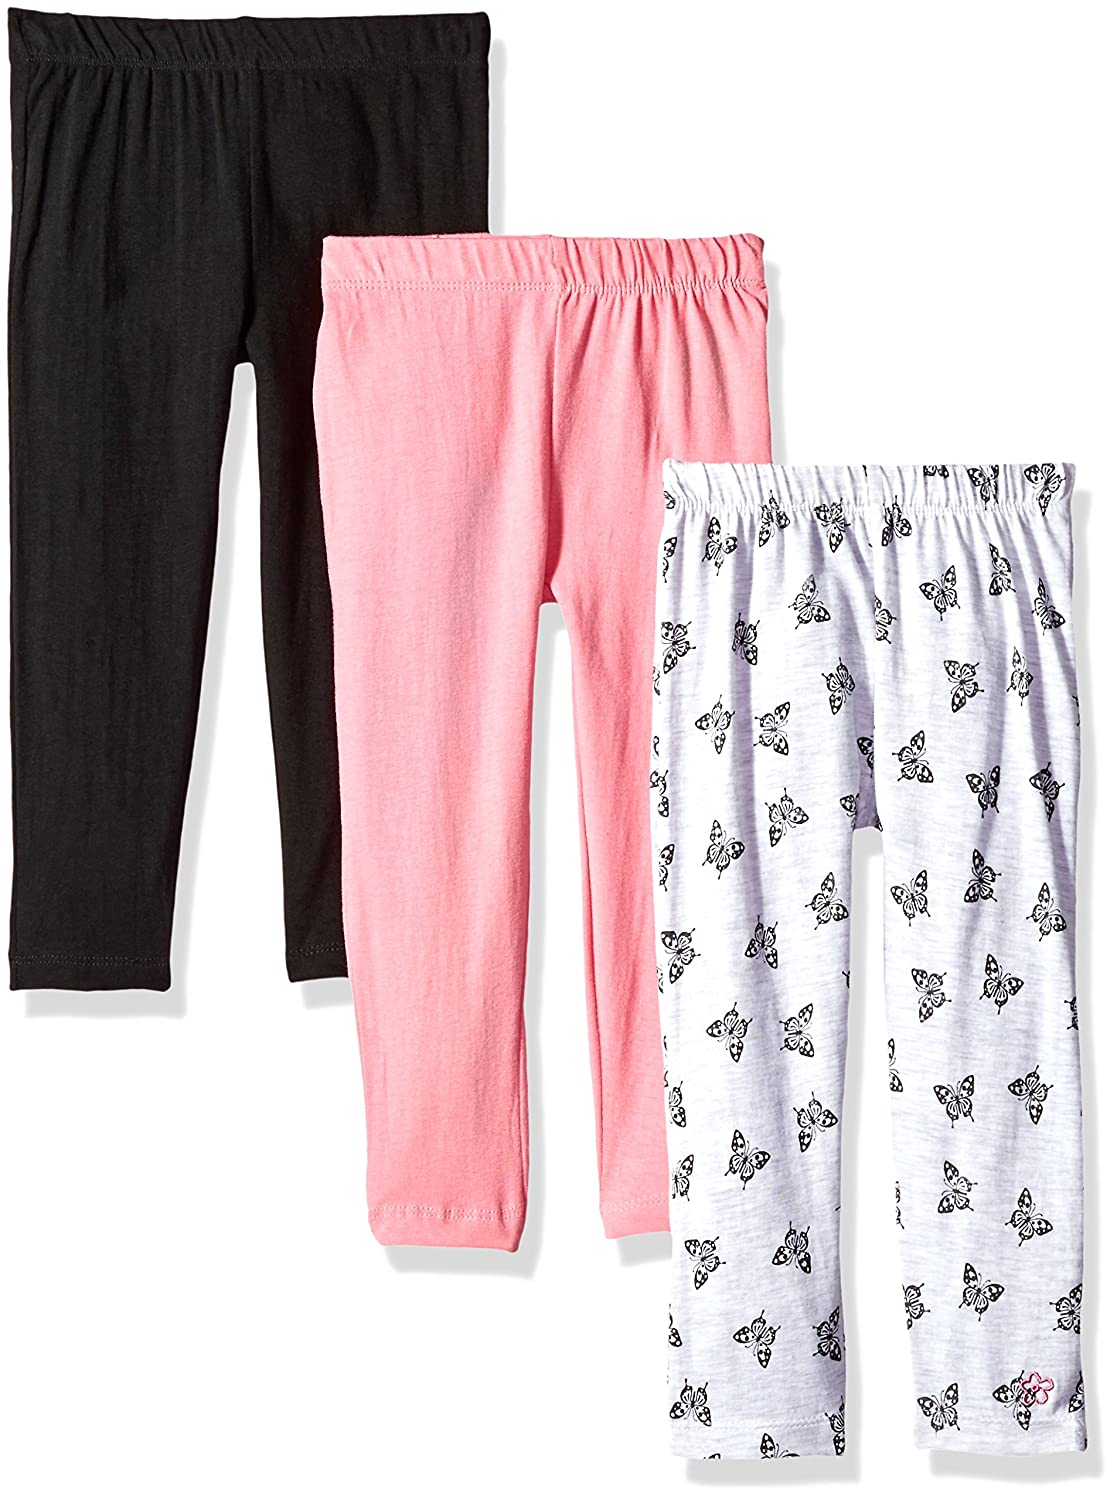 Limited Too Toddler Girls' 3 Pack Jersey Spandex Legging Pant (More Styles Available), Multi Print, 4T